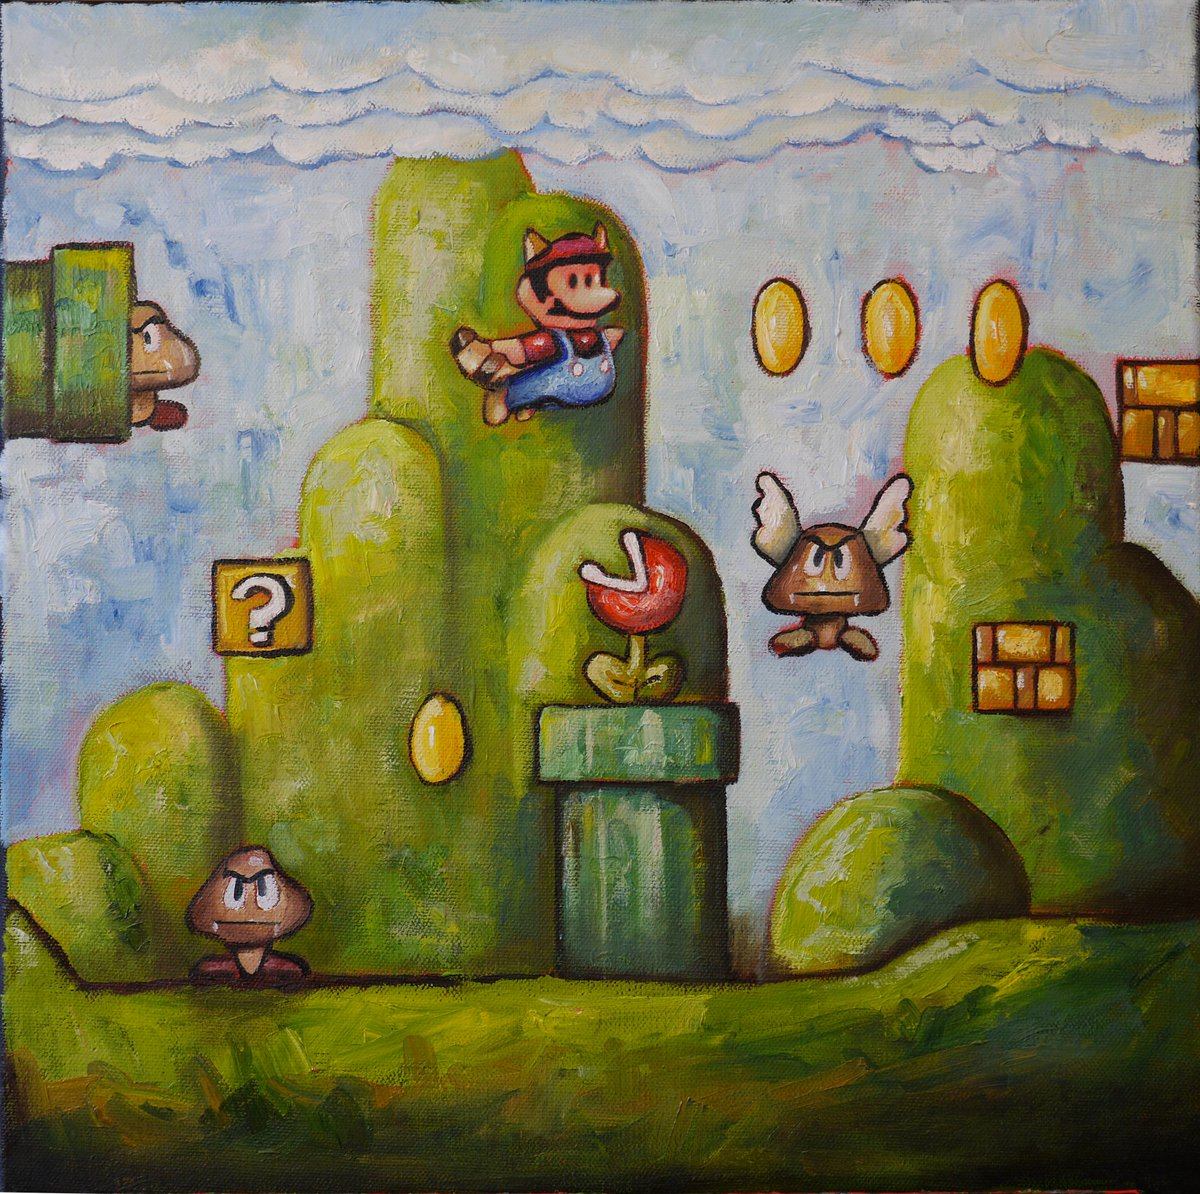 test Twitter Media - Super Mario oil. Loved creating this one! #painting #art #artist  #illustration #artworks #artists   #paint  #instaart #fineart #abstractart #creative #paintings #love #videogames  #artoftheday #painting #nintendo #creating #color #canvas #gamer #games #snes #snesclassic #daily https://t.co/H1w0QaT69a